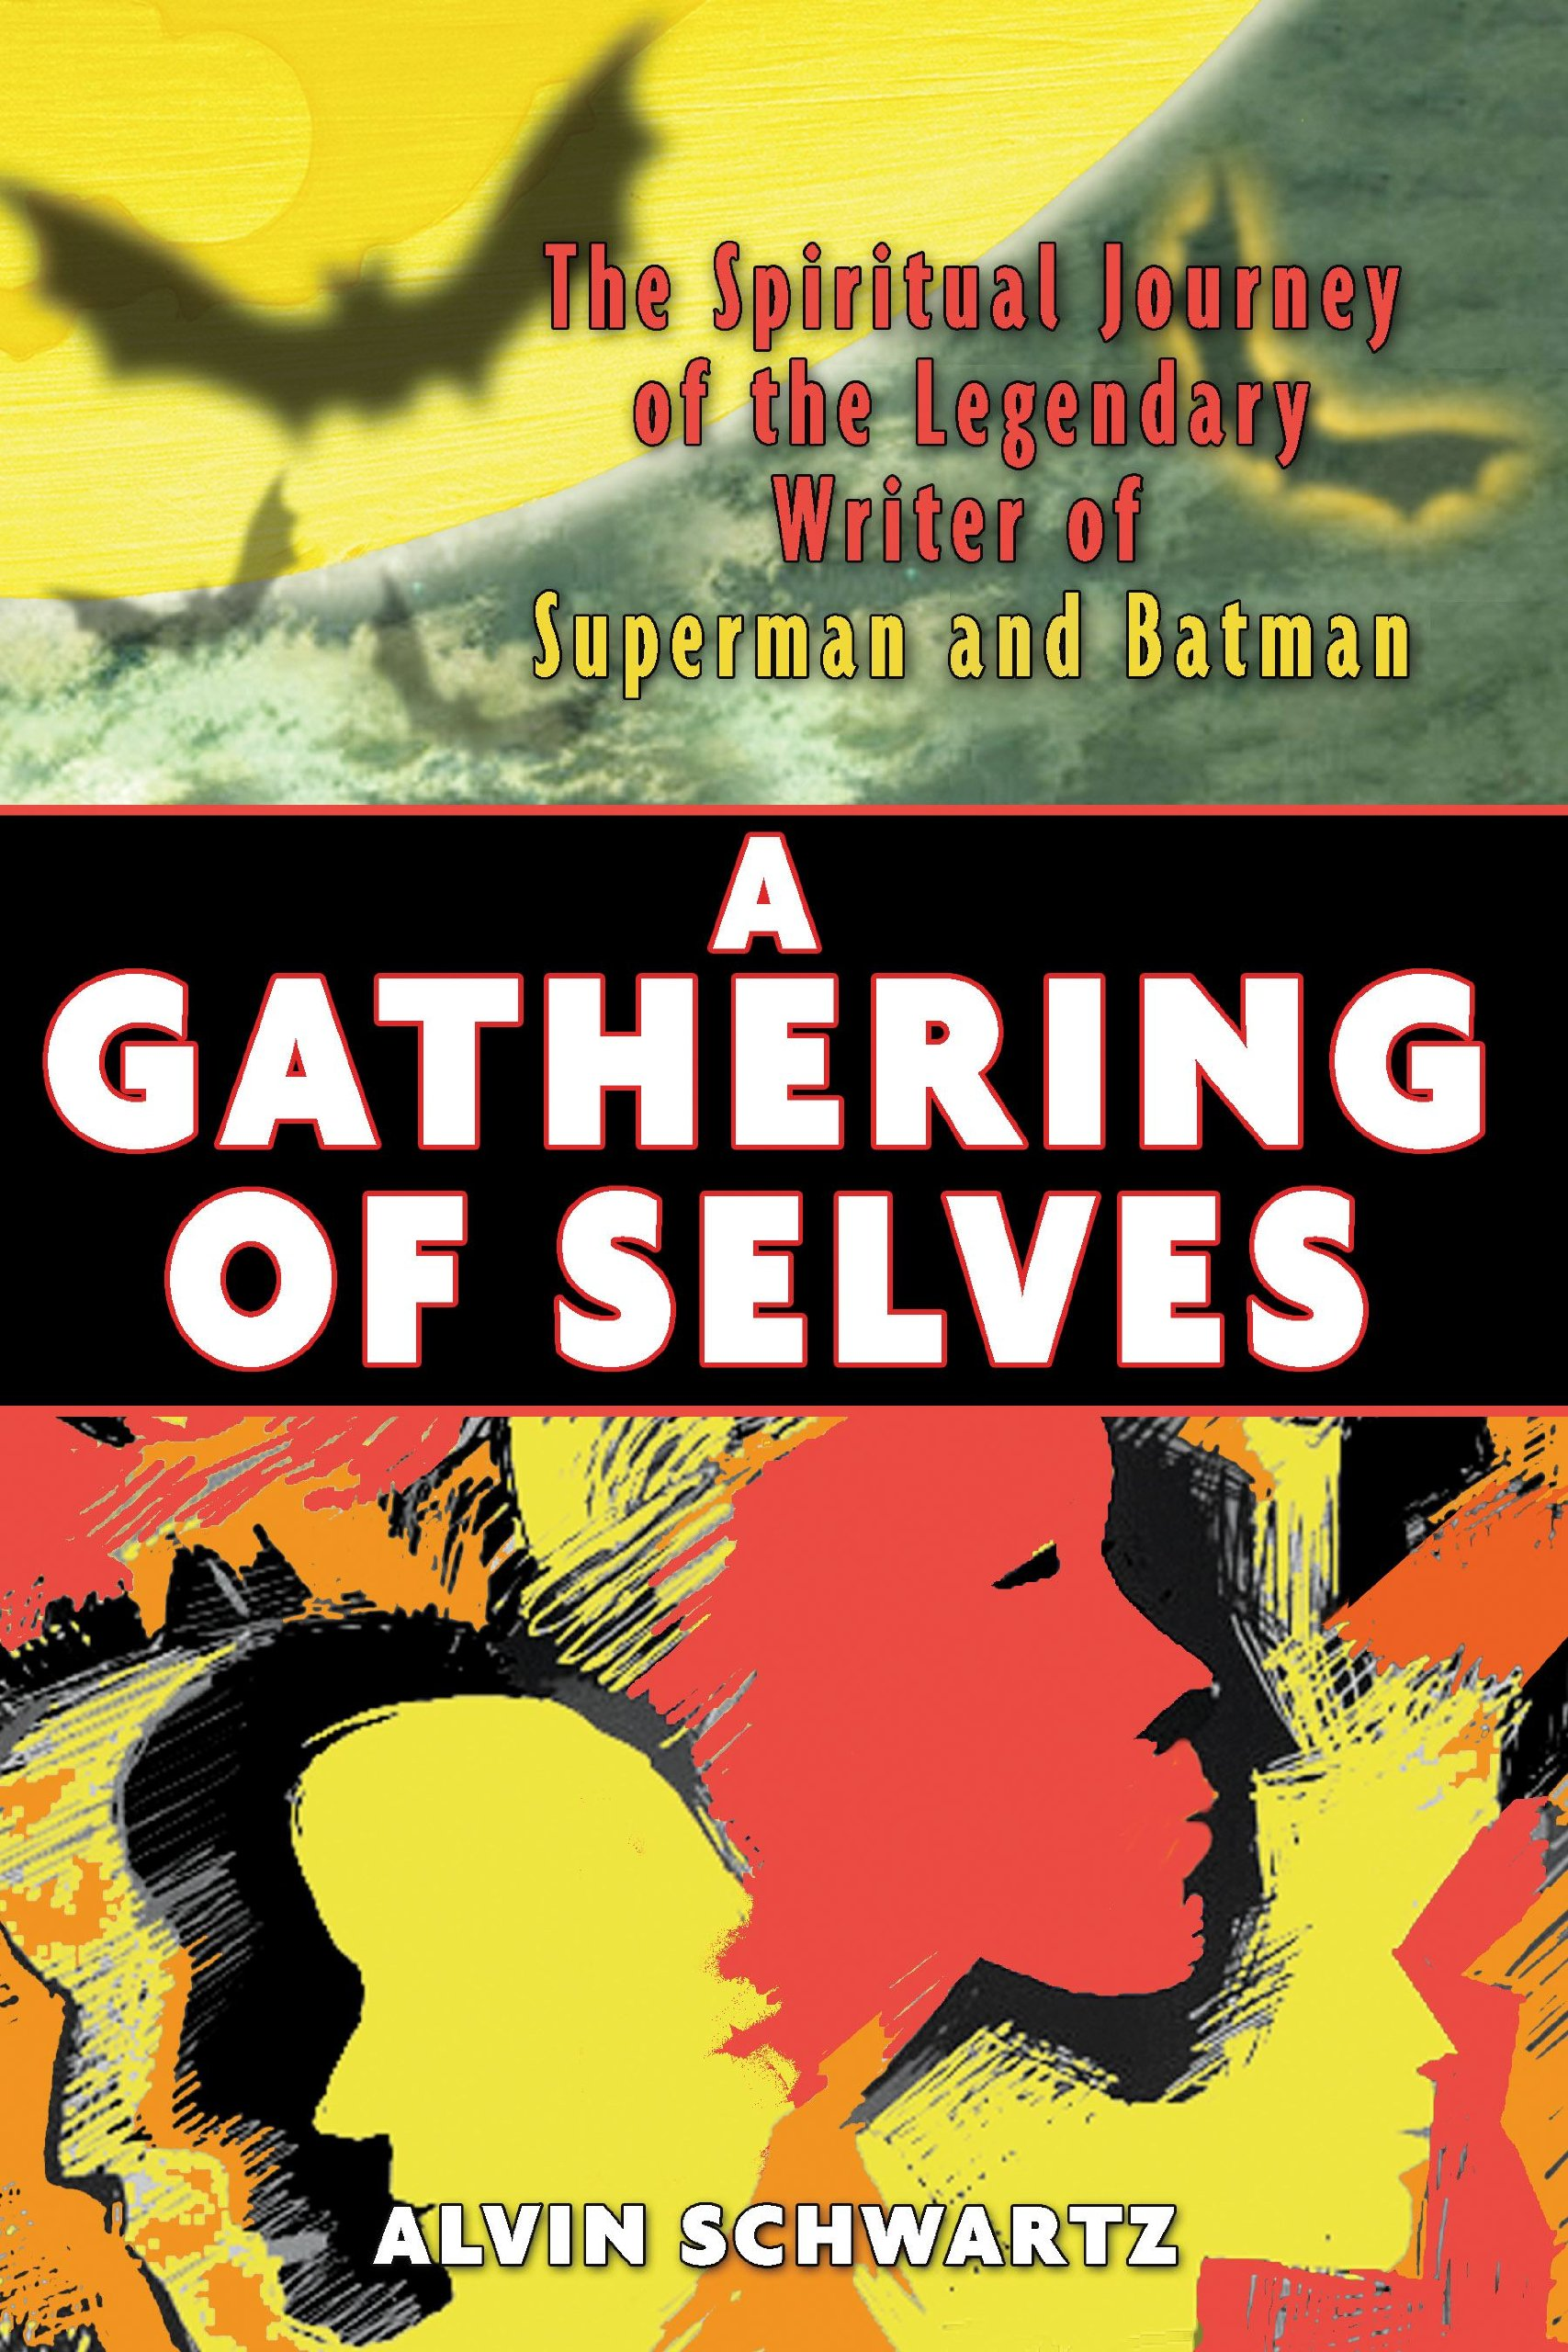 A Gathering of Selves: The Spiritual Journey of the Legendary Writer of Superman and Batman PDF